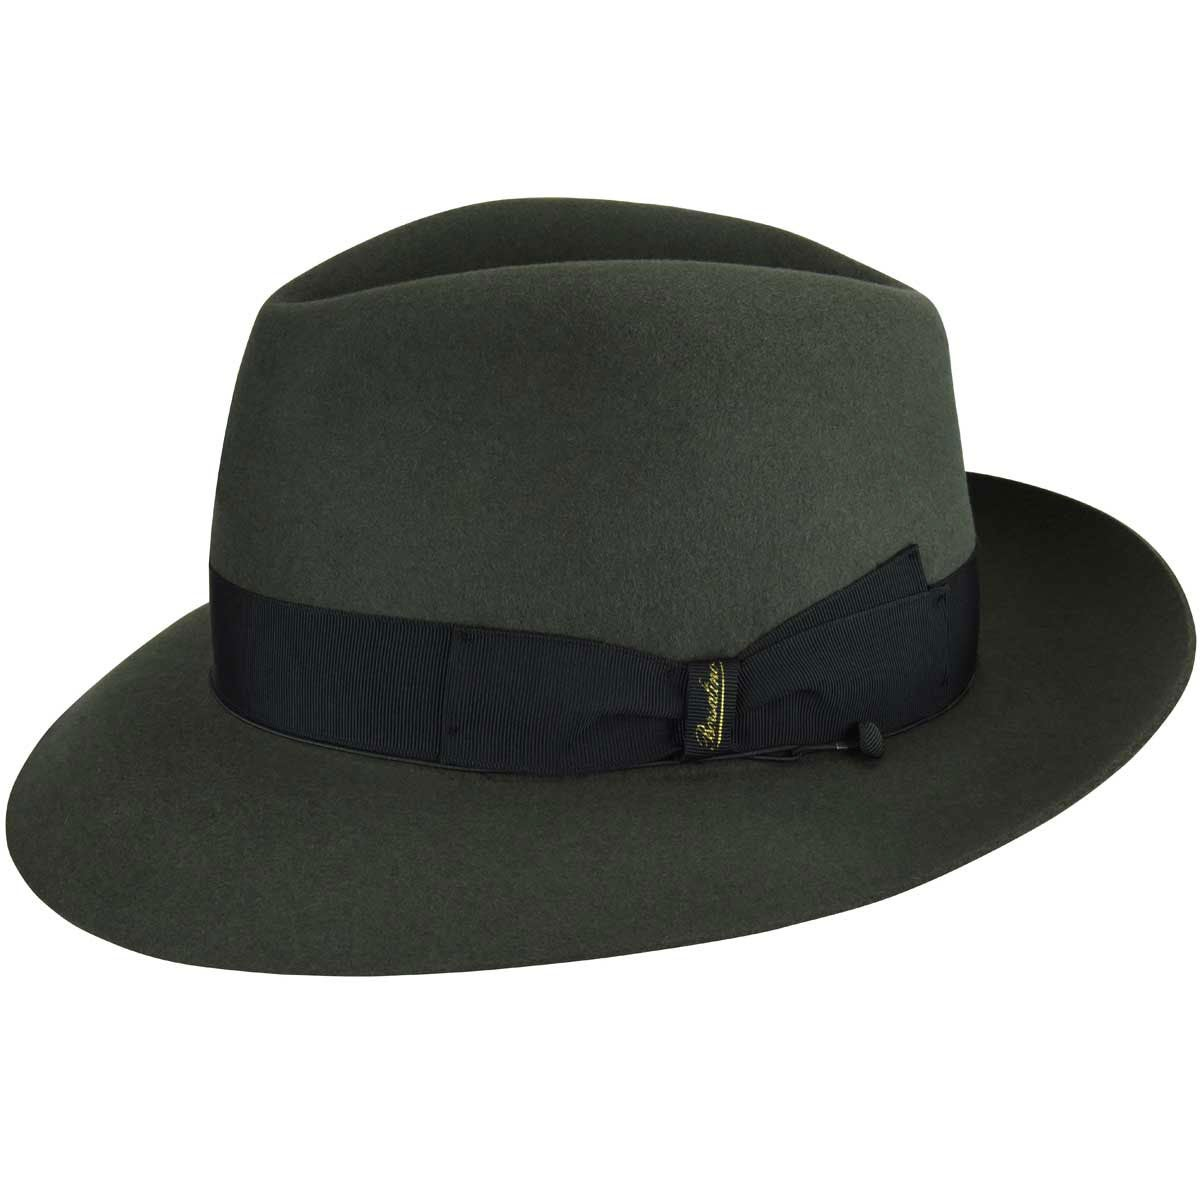 Rockabilly Men's Clothing Bellini Fedora $430.00 AT vintagedancer.com